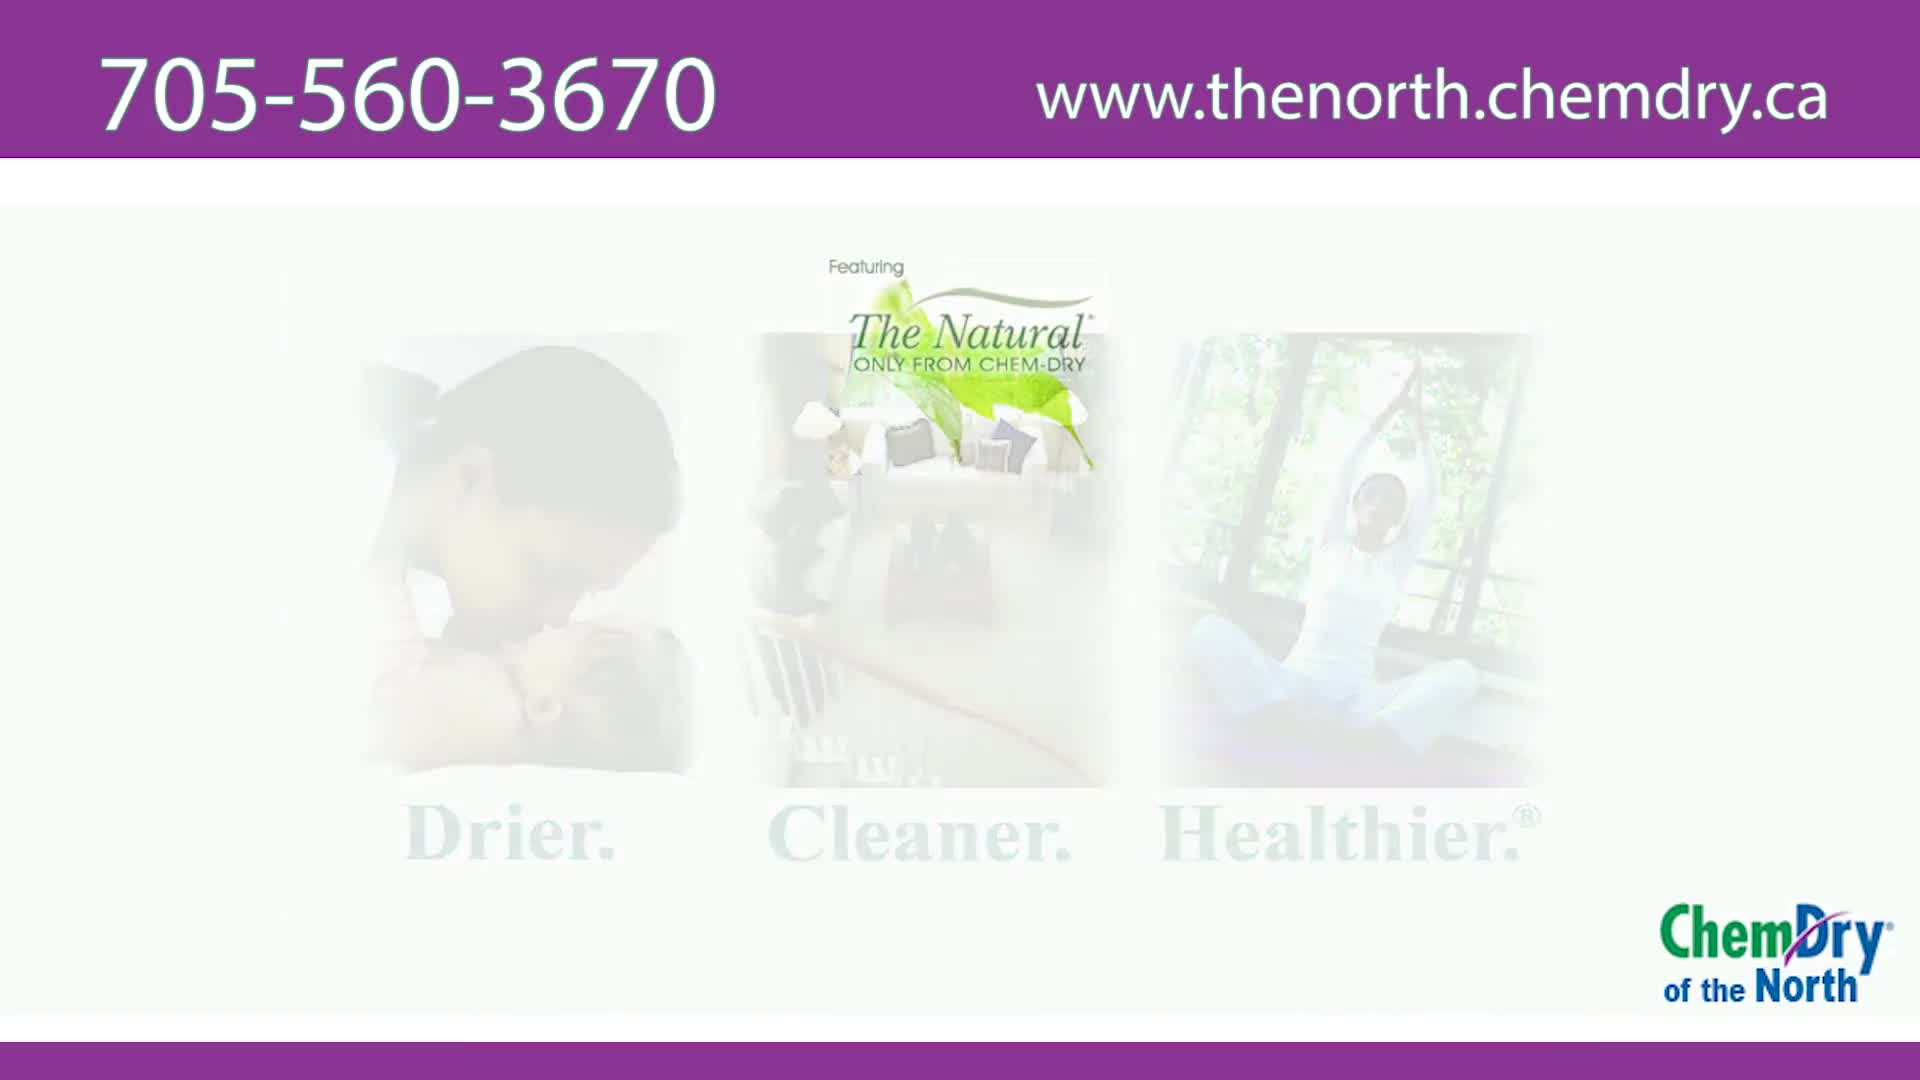 Chem-Dry of the North - Carpet & Rug Cleaning - 705-560-3670